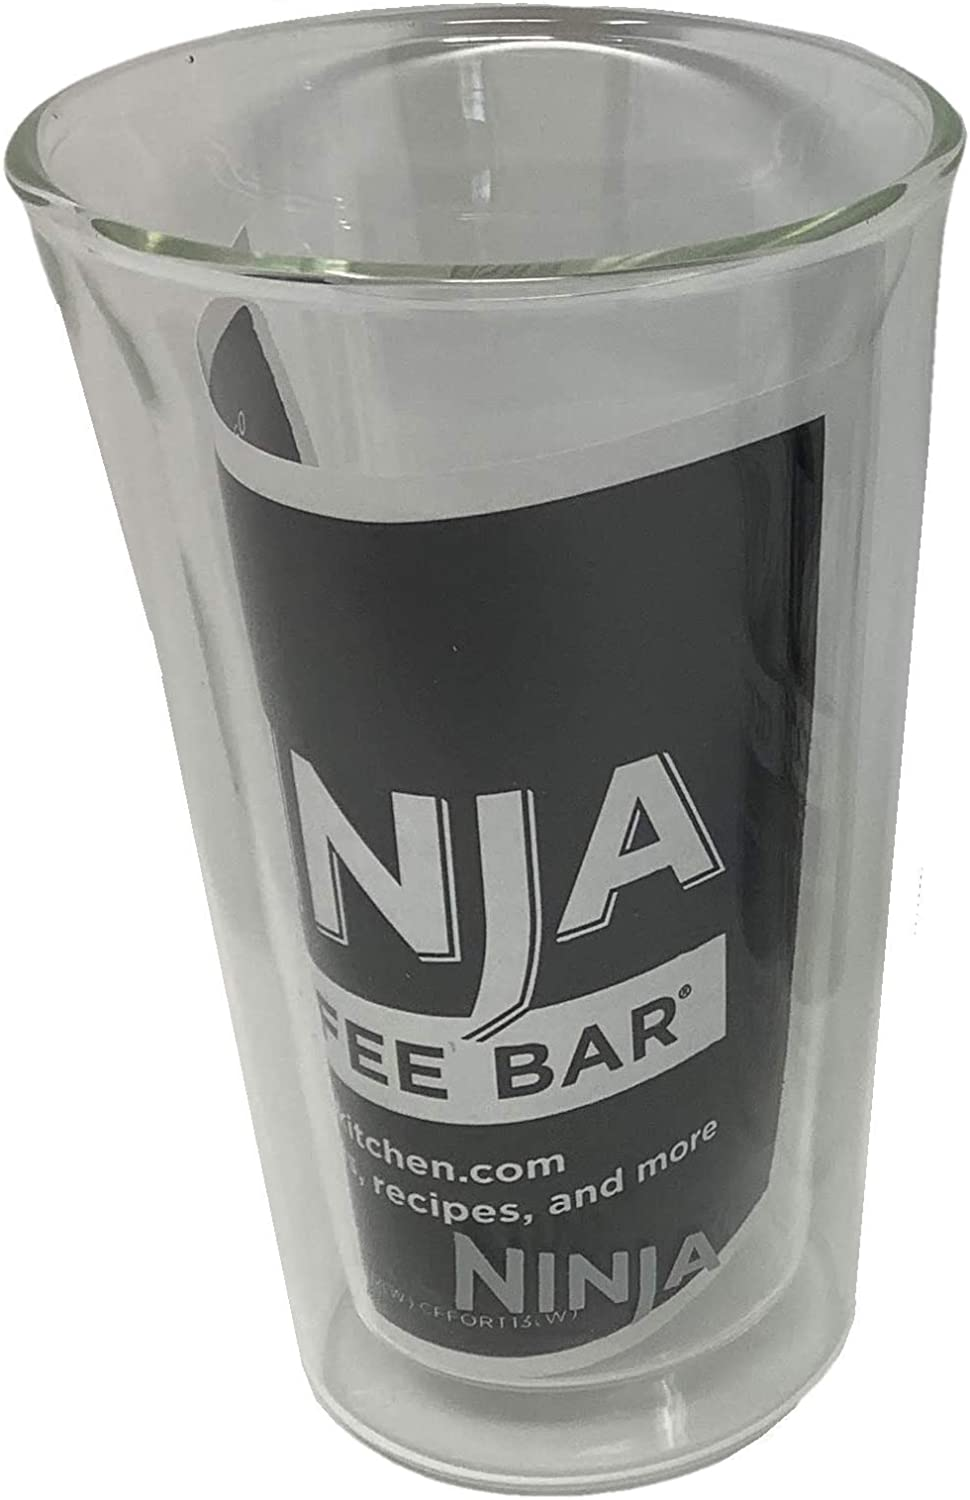 Ninja 12oz Double-Wall Thermo Insulated Tumbler Clear Glass Coffee Tea Cup For Cafe Bar Forte Brew